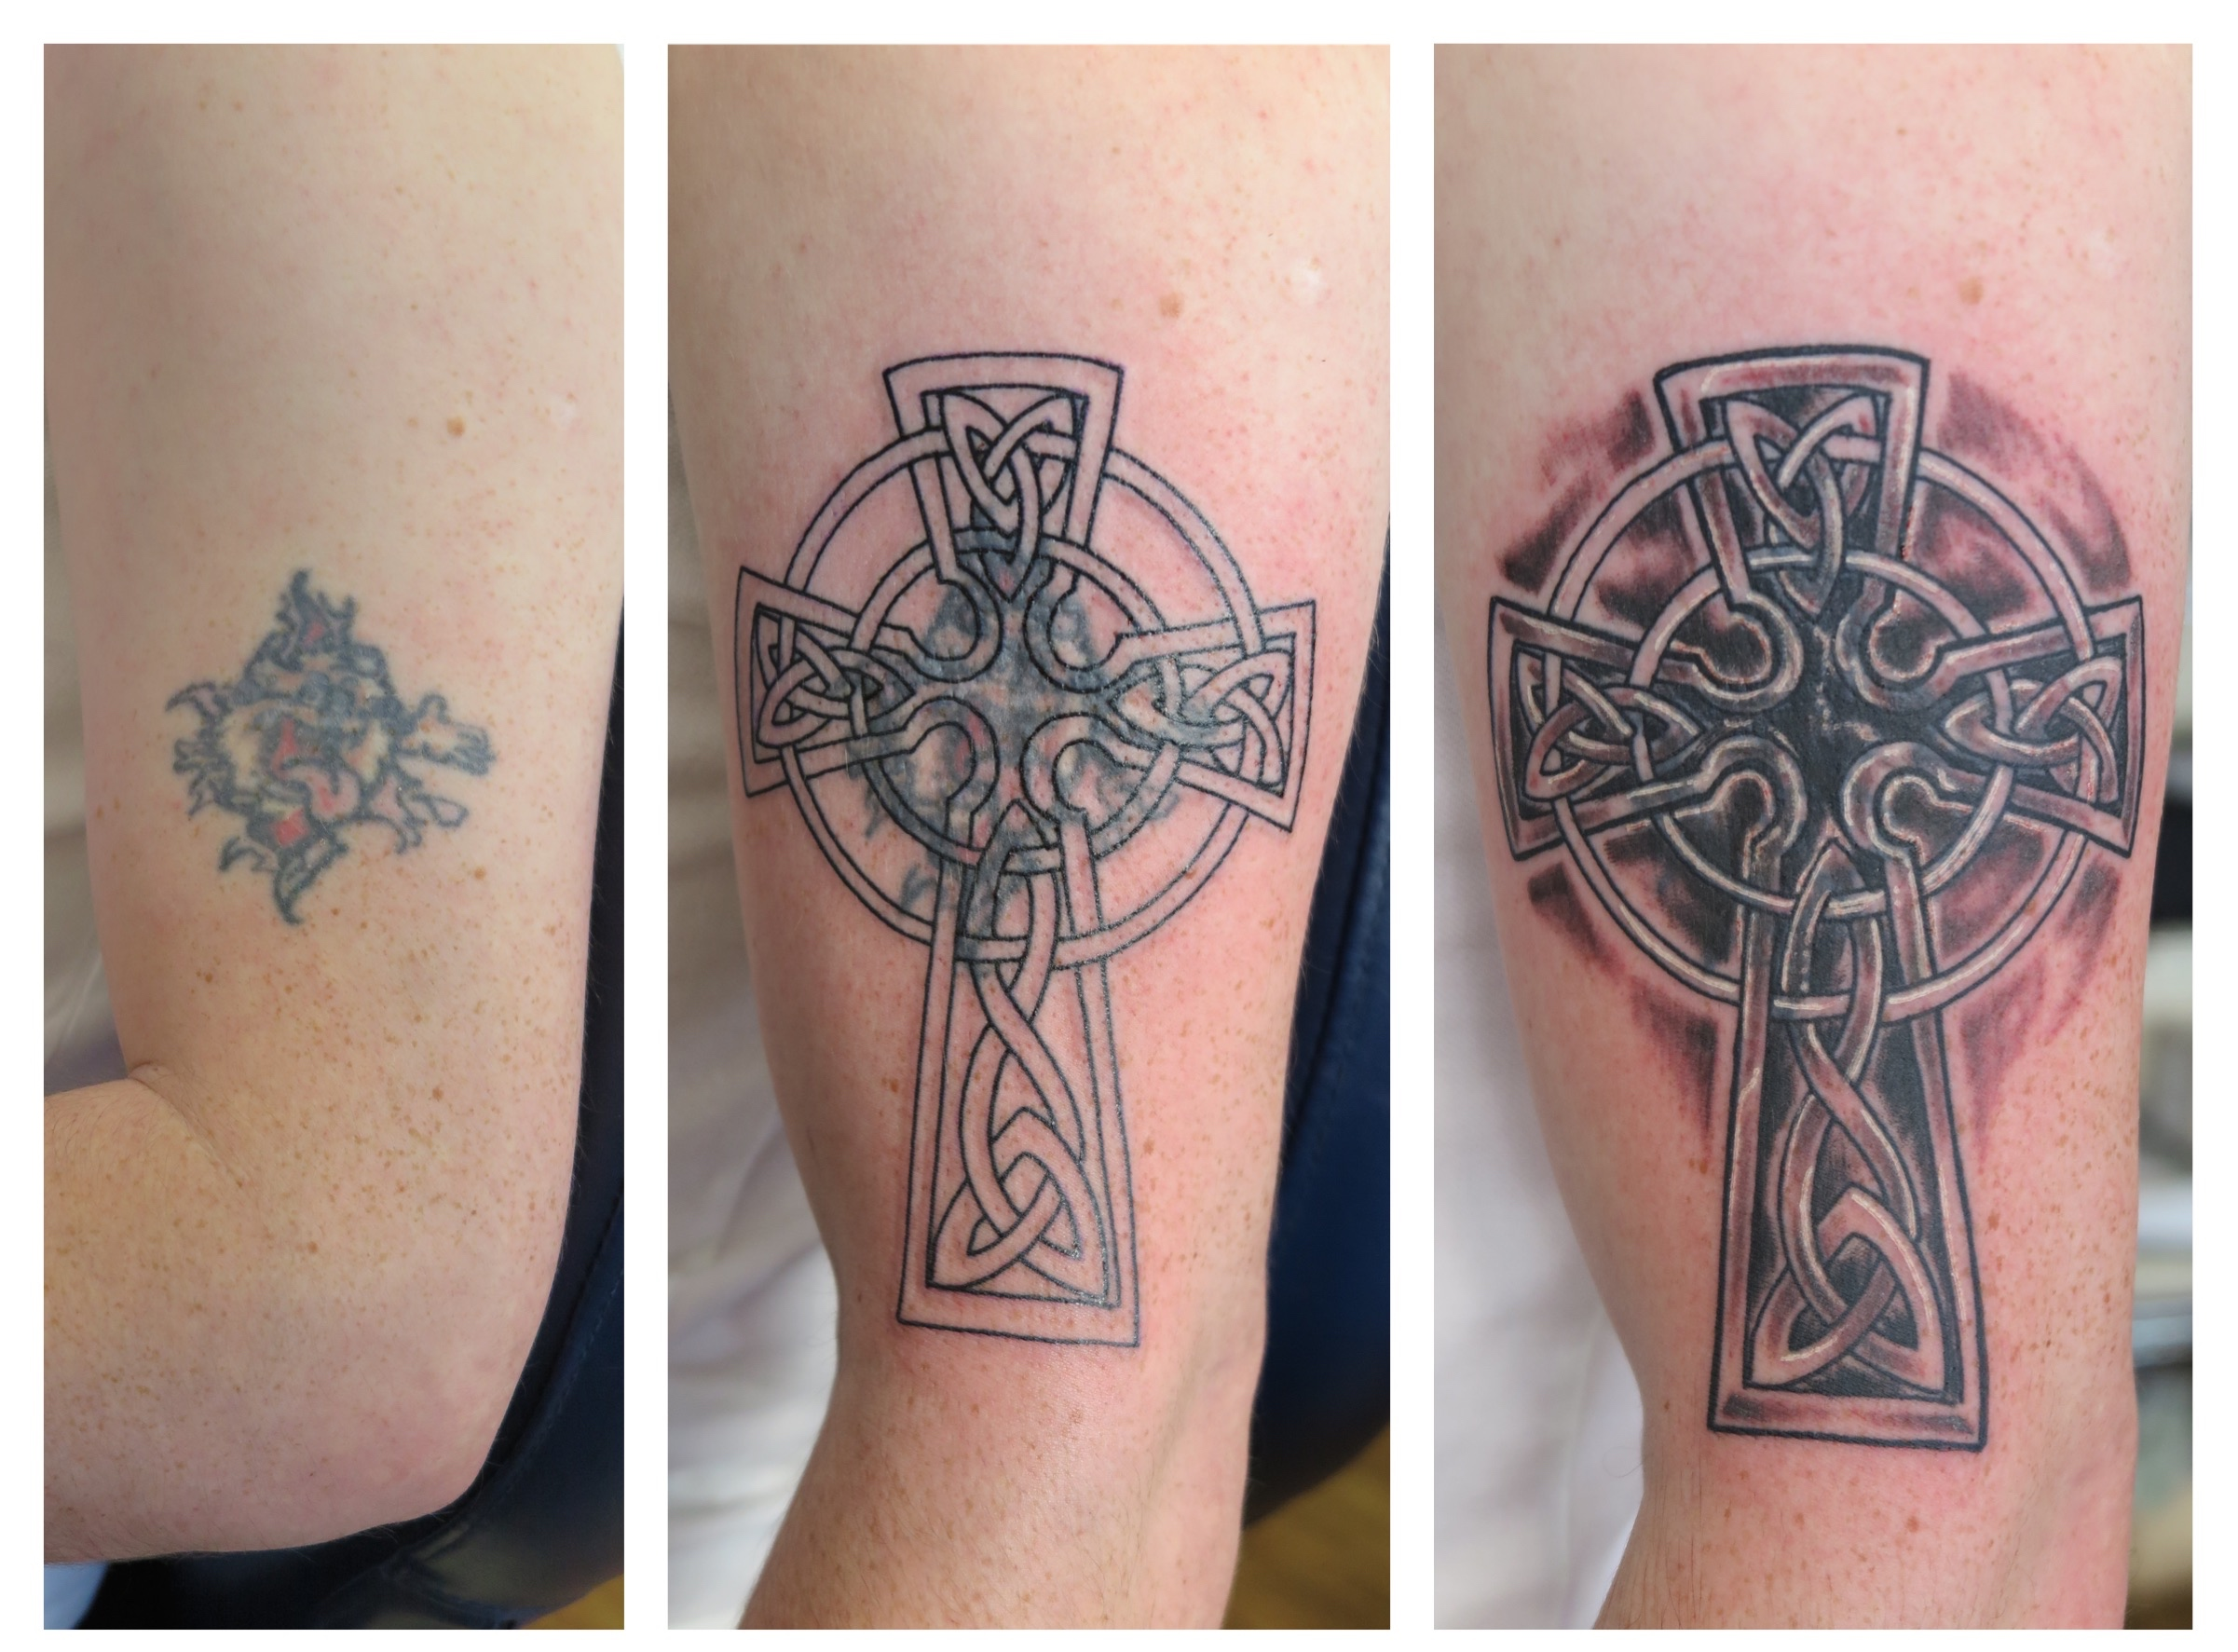 Irish St Tattoo Downpatrick Northern Ireland